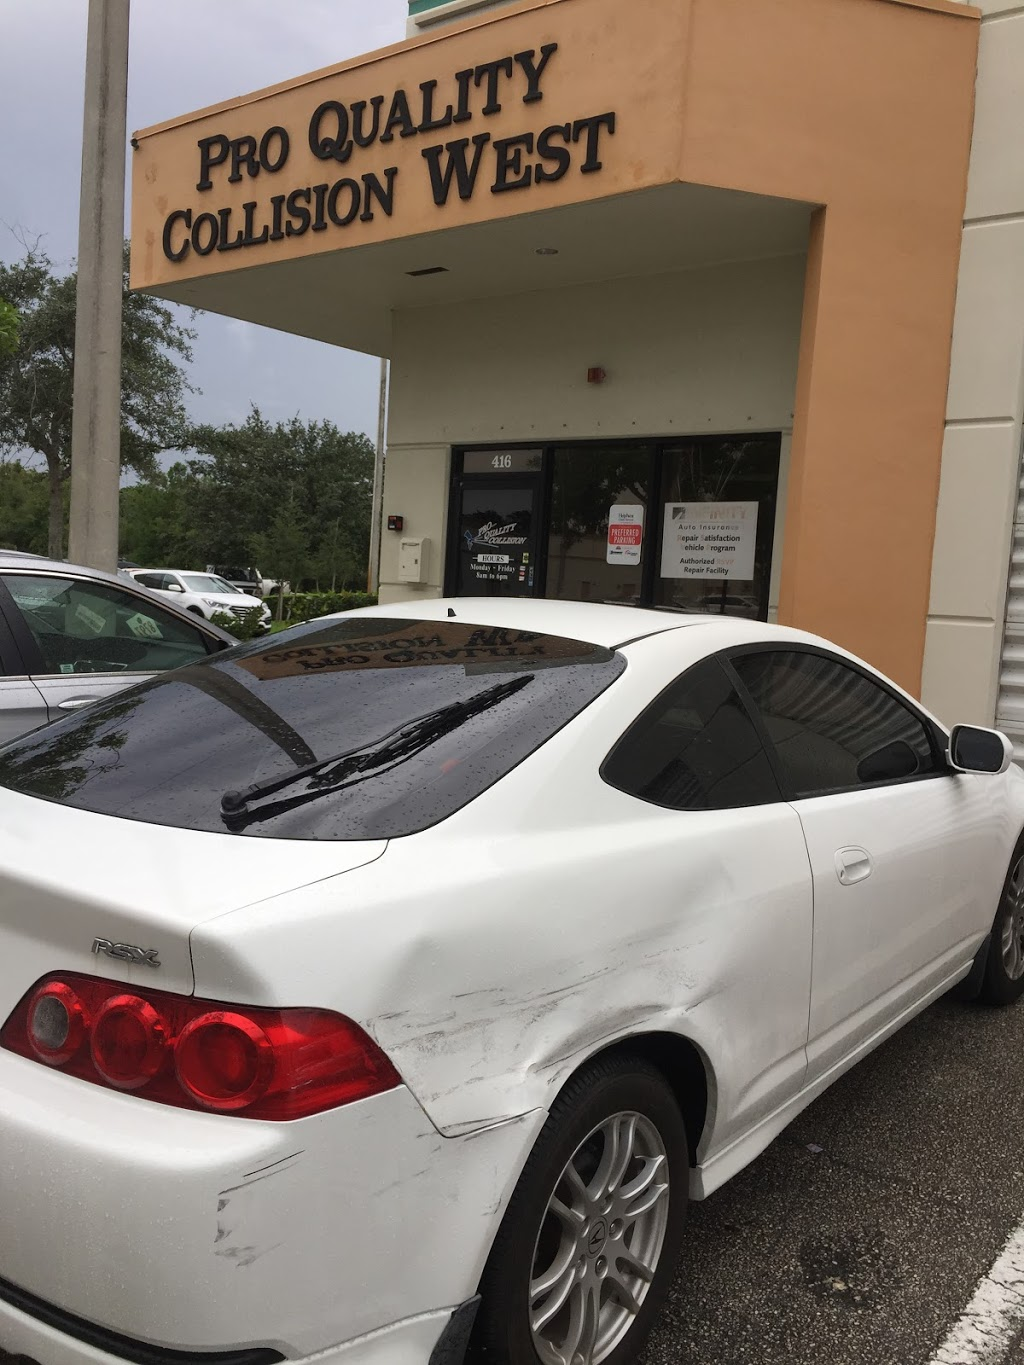 Pro Quality Collision - West - car repair  | Photo 9 of 10 | Address: 6861 SW 196th Ave #416, Fort Lauderdale, FL 33332, USA | Phone: (954) 680-9801